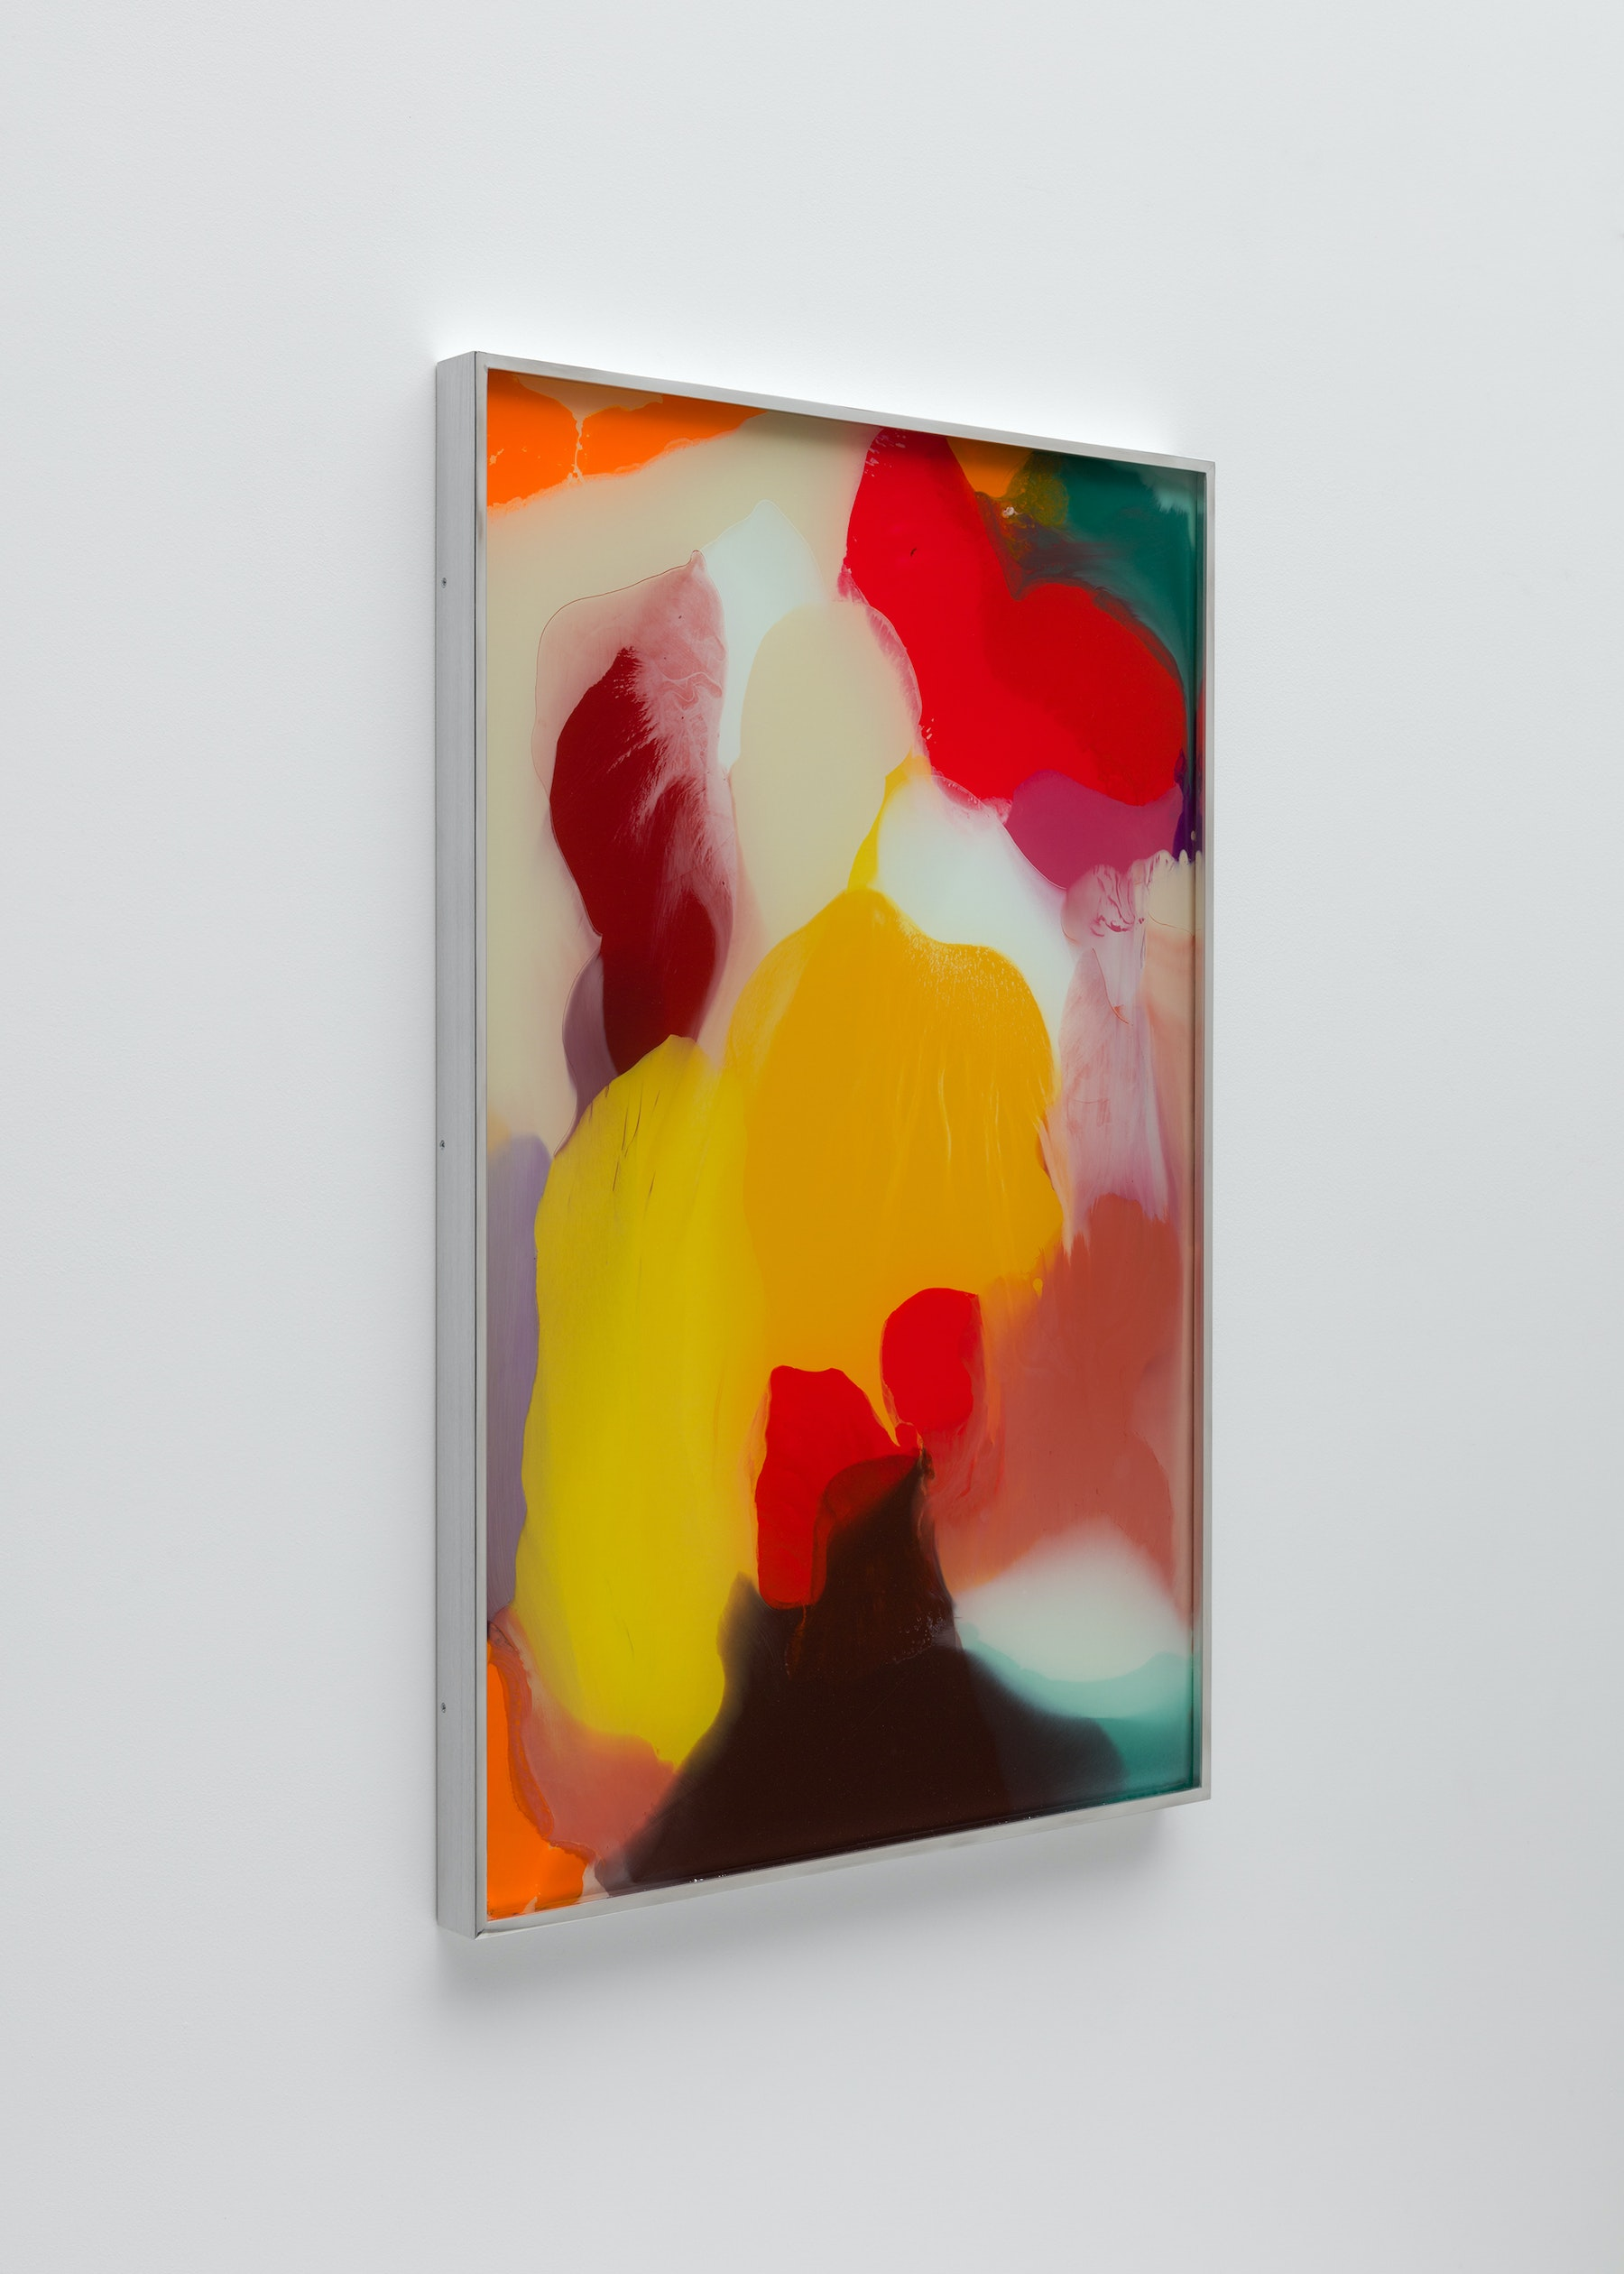 """Yunhee Min """"Up Close in Distance (variation study b4),"""" 2018 Enamel on laminated glass 34.5 x 22.5"""" [HxW] (87.63 x 57.15 cm) Inventory #MIN341 Courtesy of the artist and Vielmetter Los Angeles Photo credit: Brica Wilcox"""